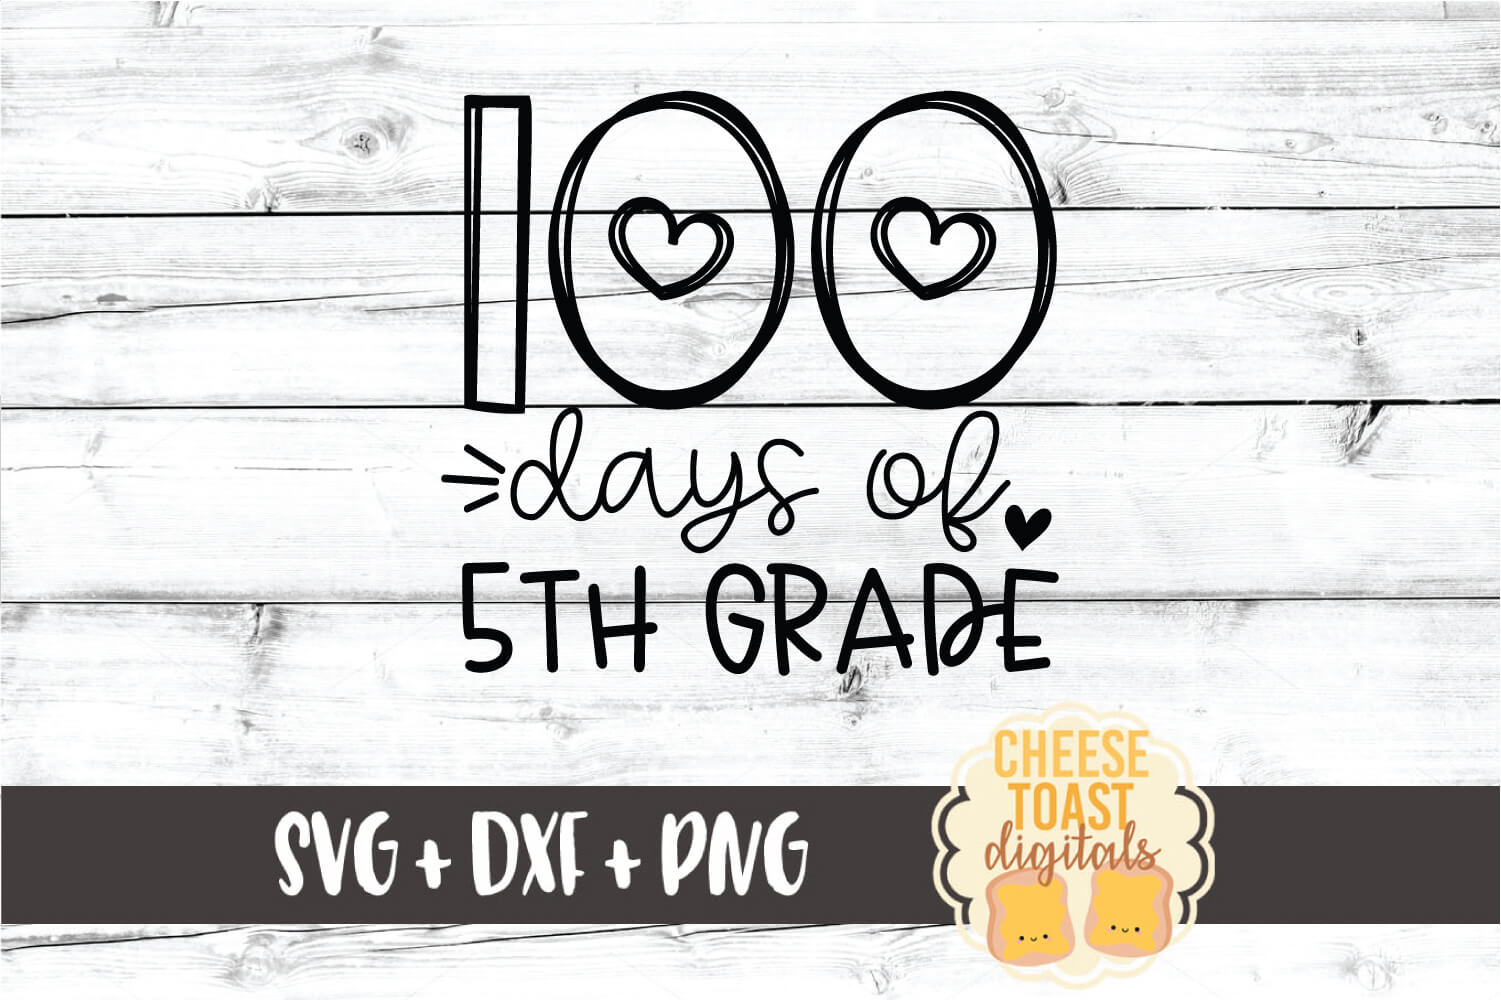 100 Days Of 5th Grade